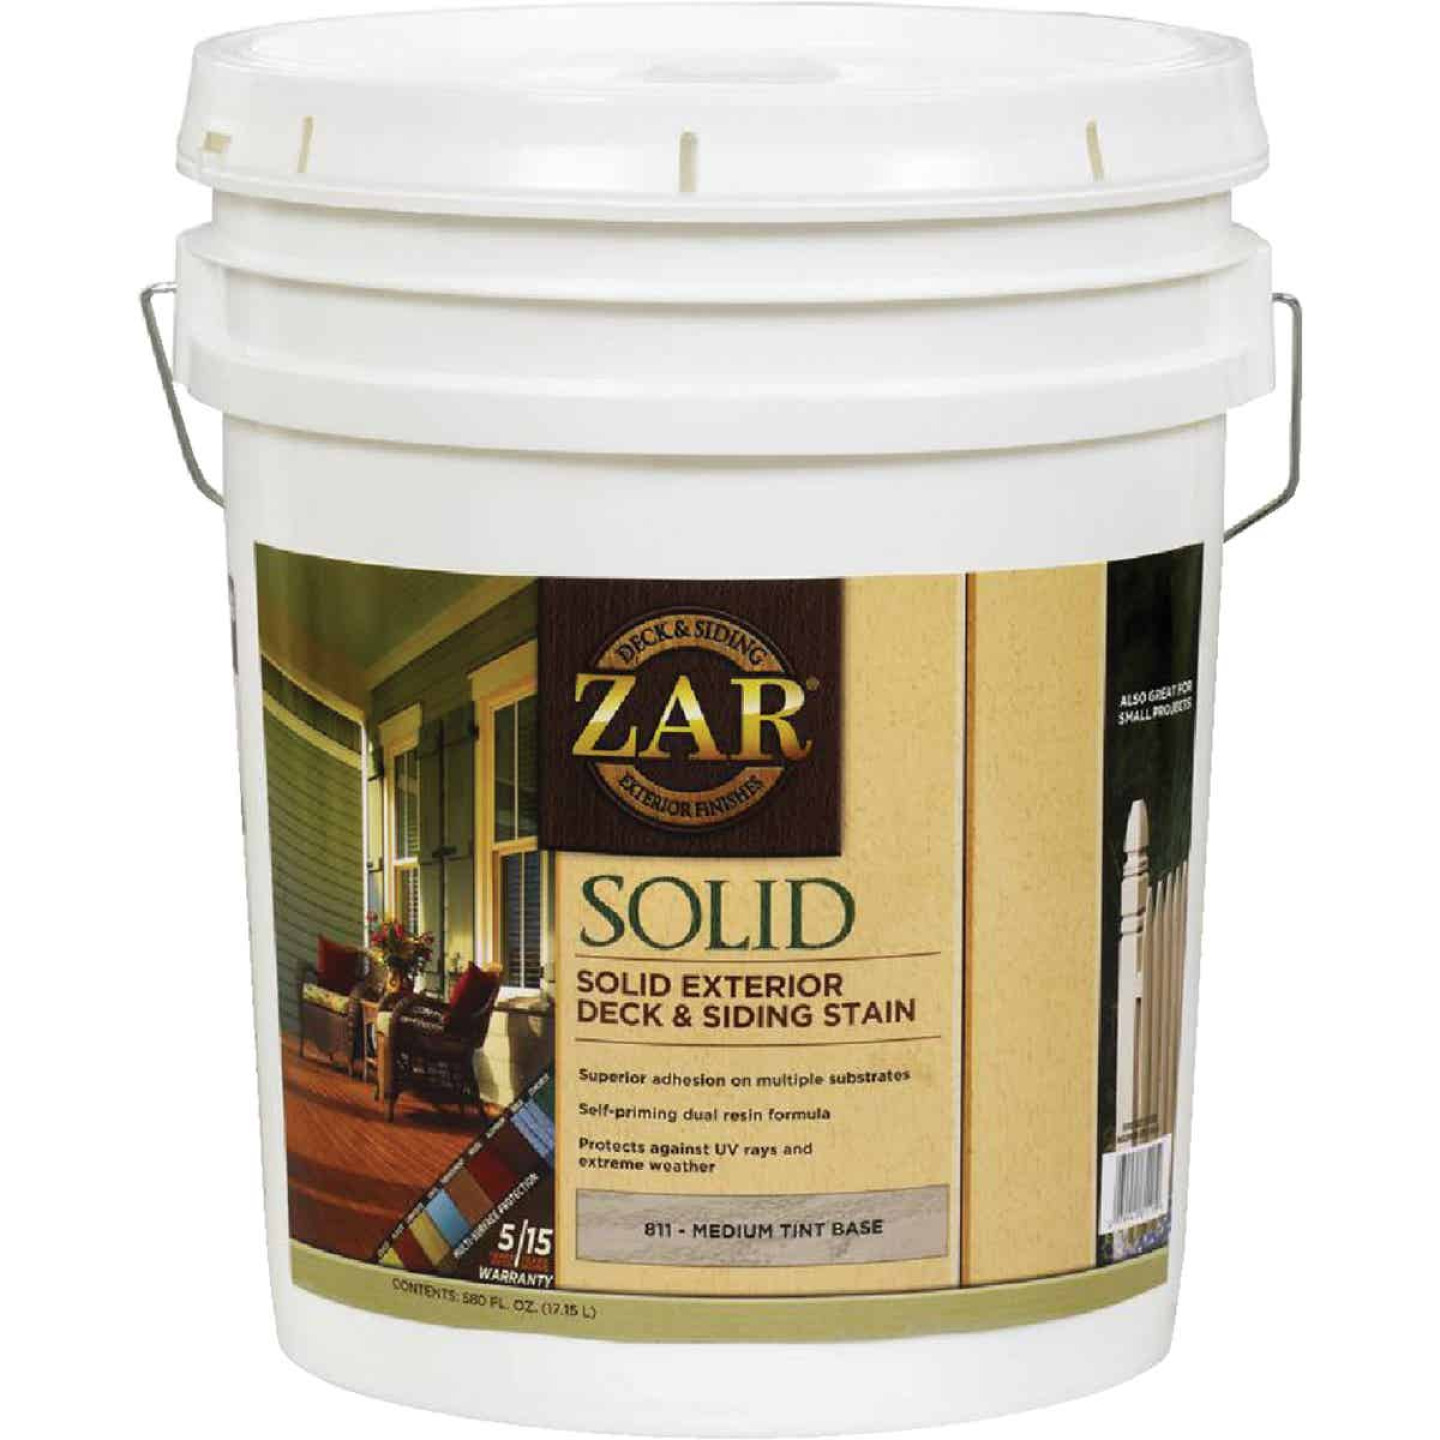 ZAR Solid Deck & Siding Stain, Medium Tint Base, 5 Gal. Image 1